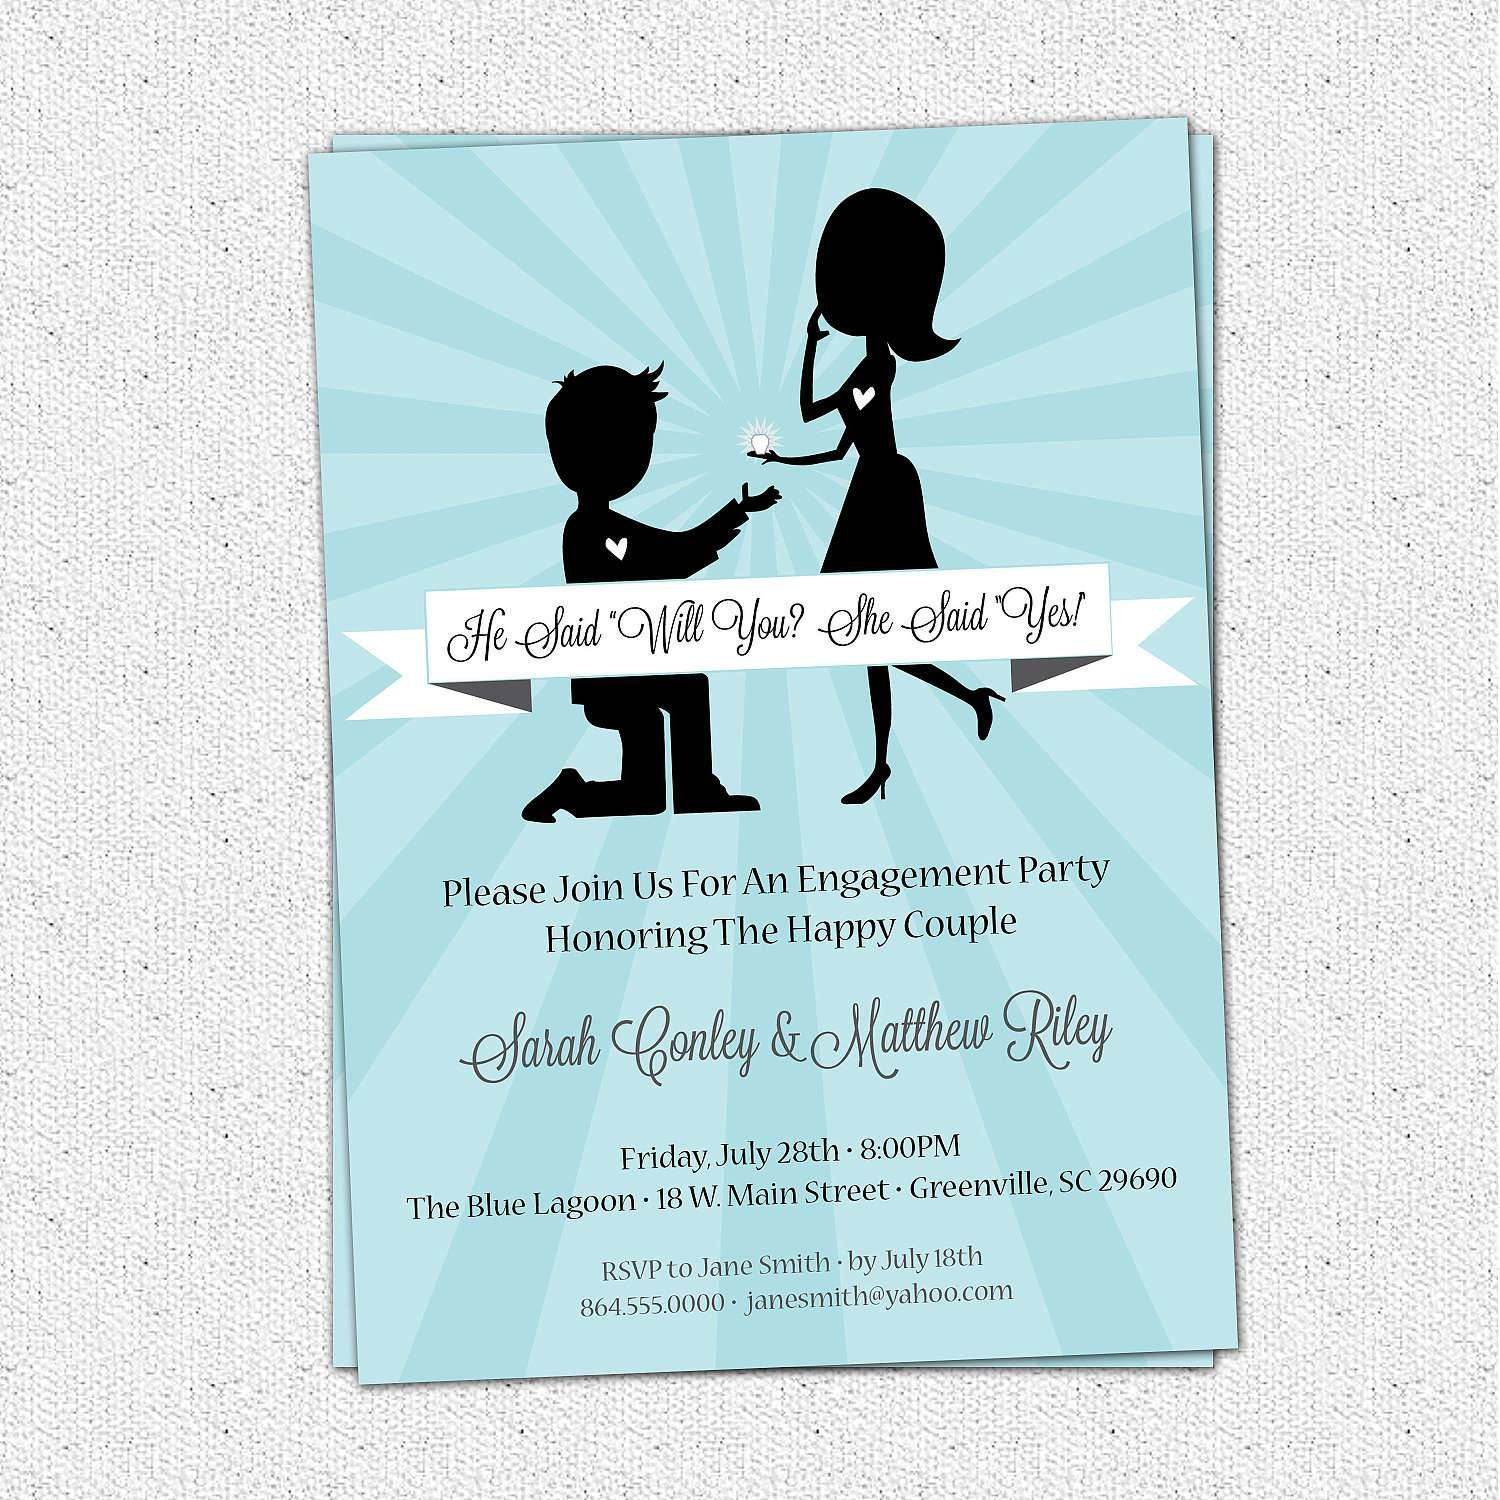 Invitation Template Word Custom Wedding Invitation Templates  Wedding Invitation Templates Word .